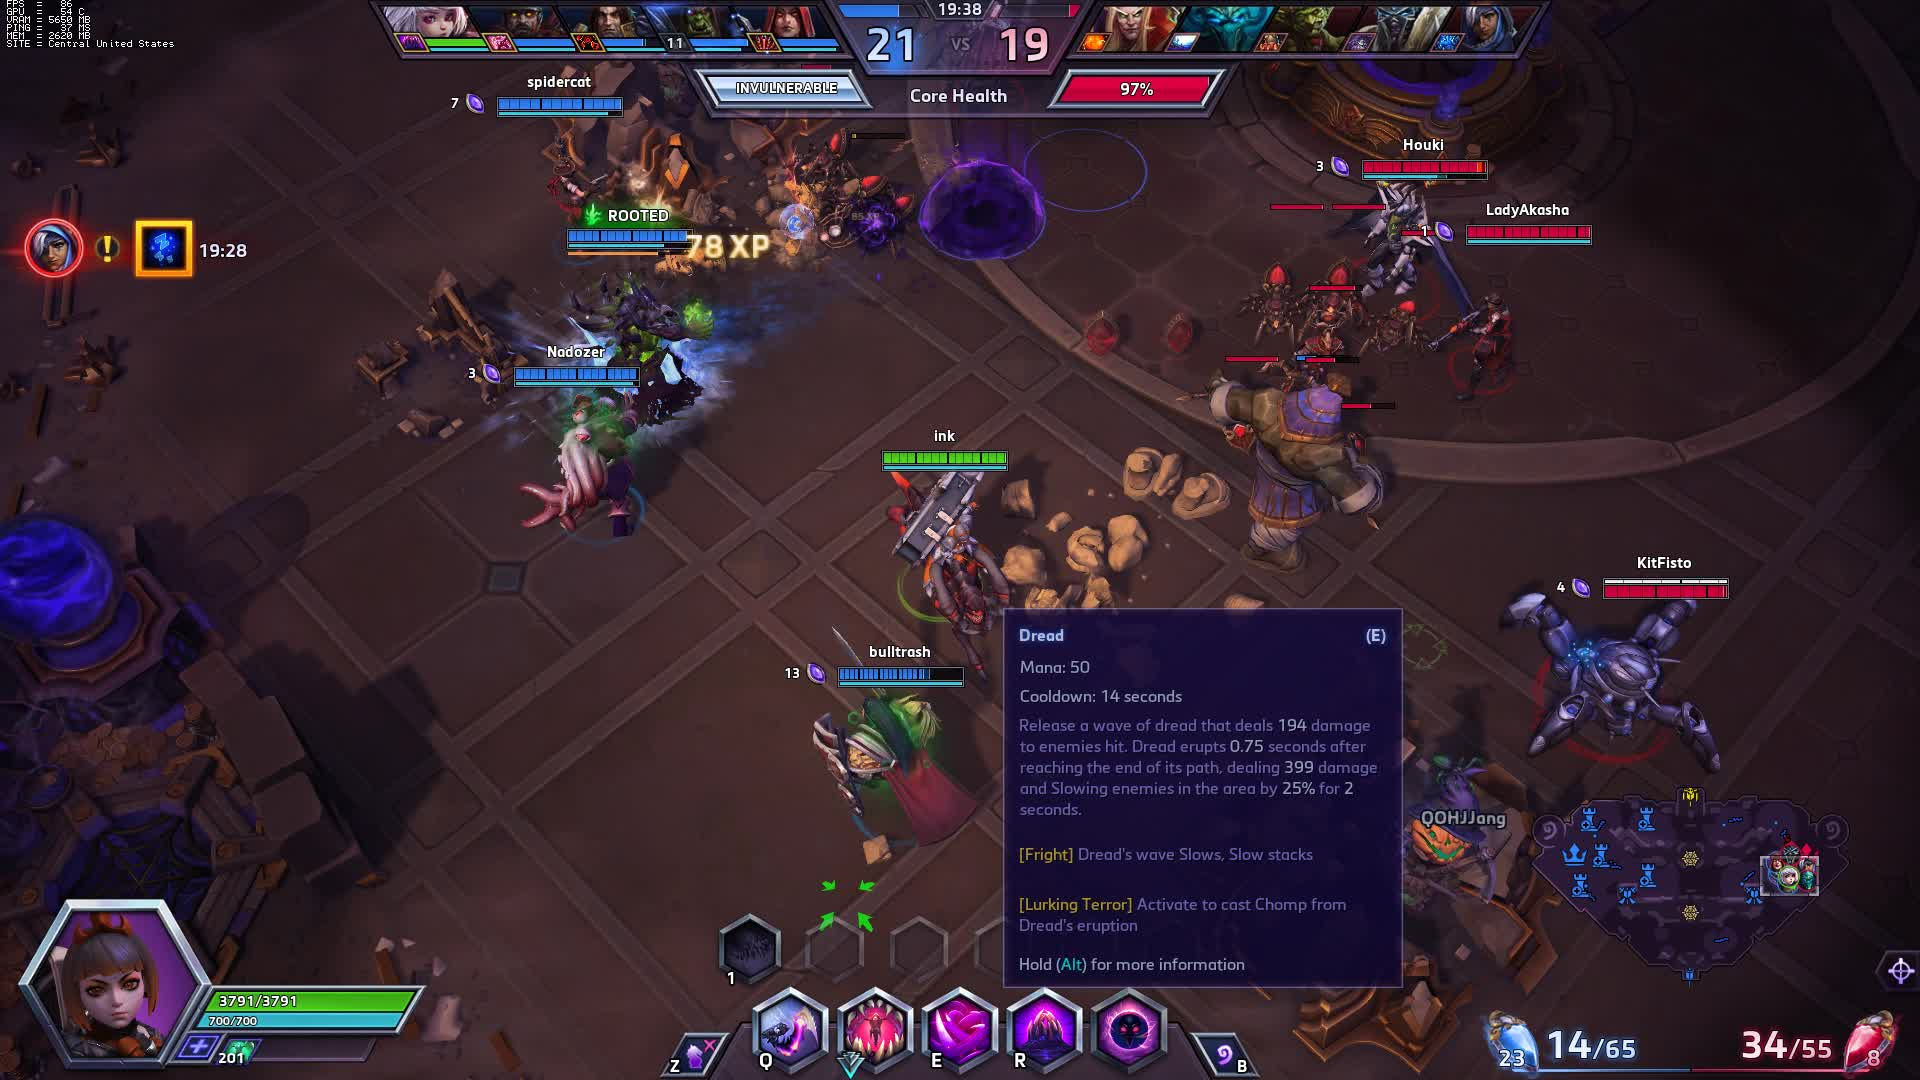 heroesofthestorm, vlc-record-2018-11-26-01h24m23s-Heroes of the Storm 2018.11.26 - 01.22.22.07.DVR.mp4- GIFs